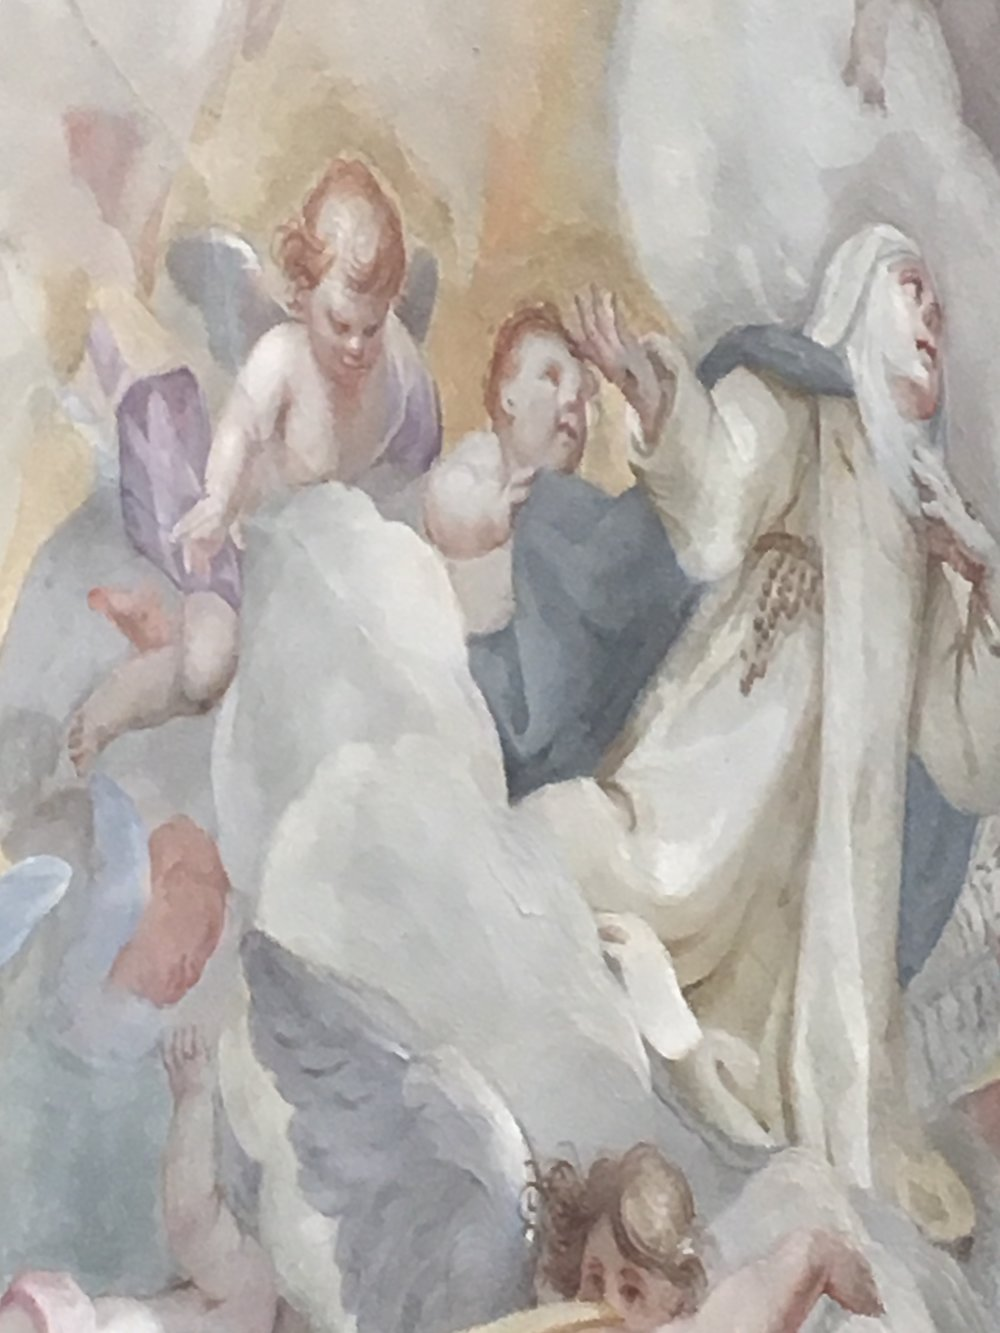 Detail from ceiling fresco